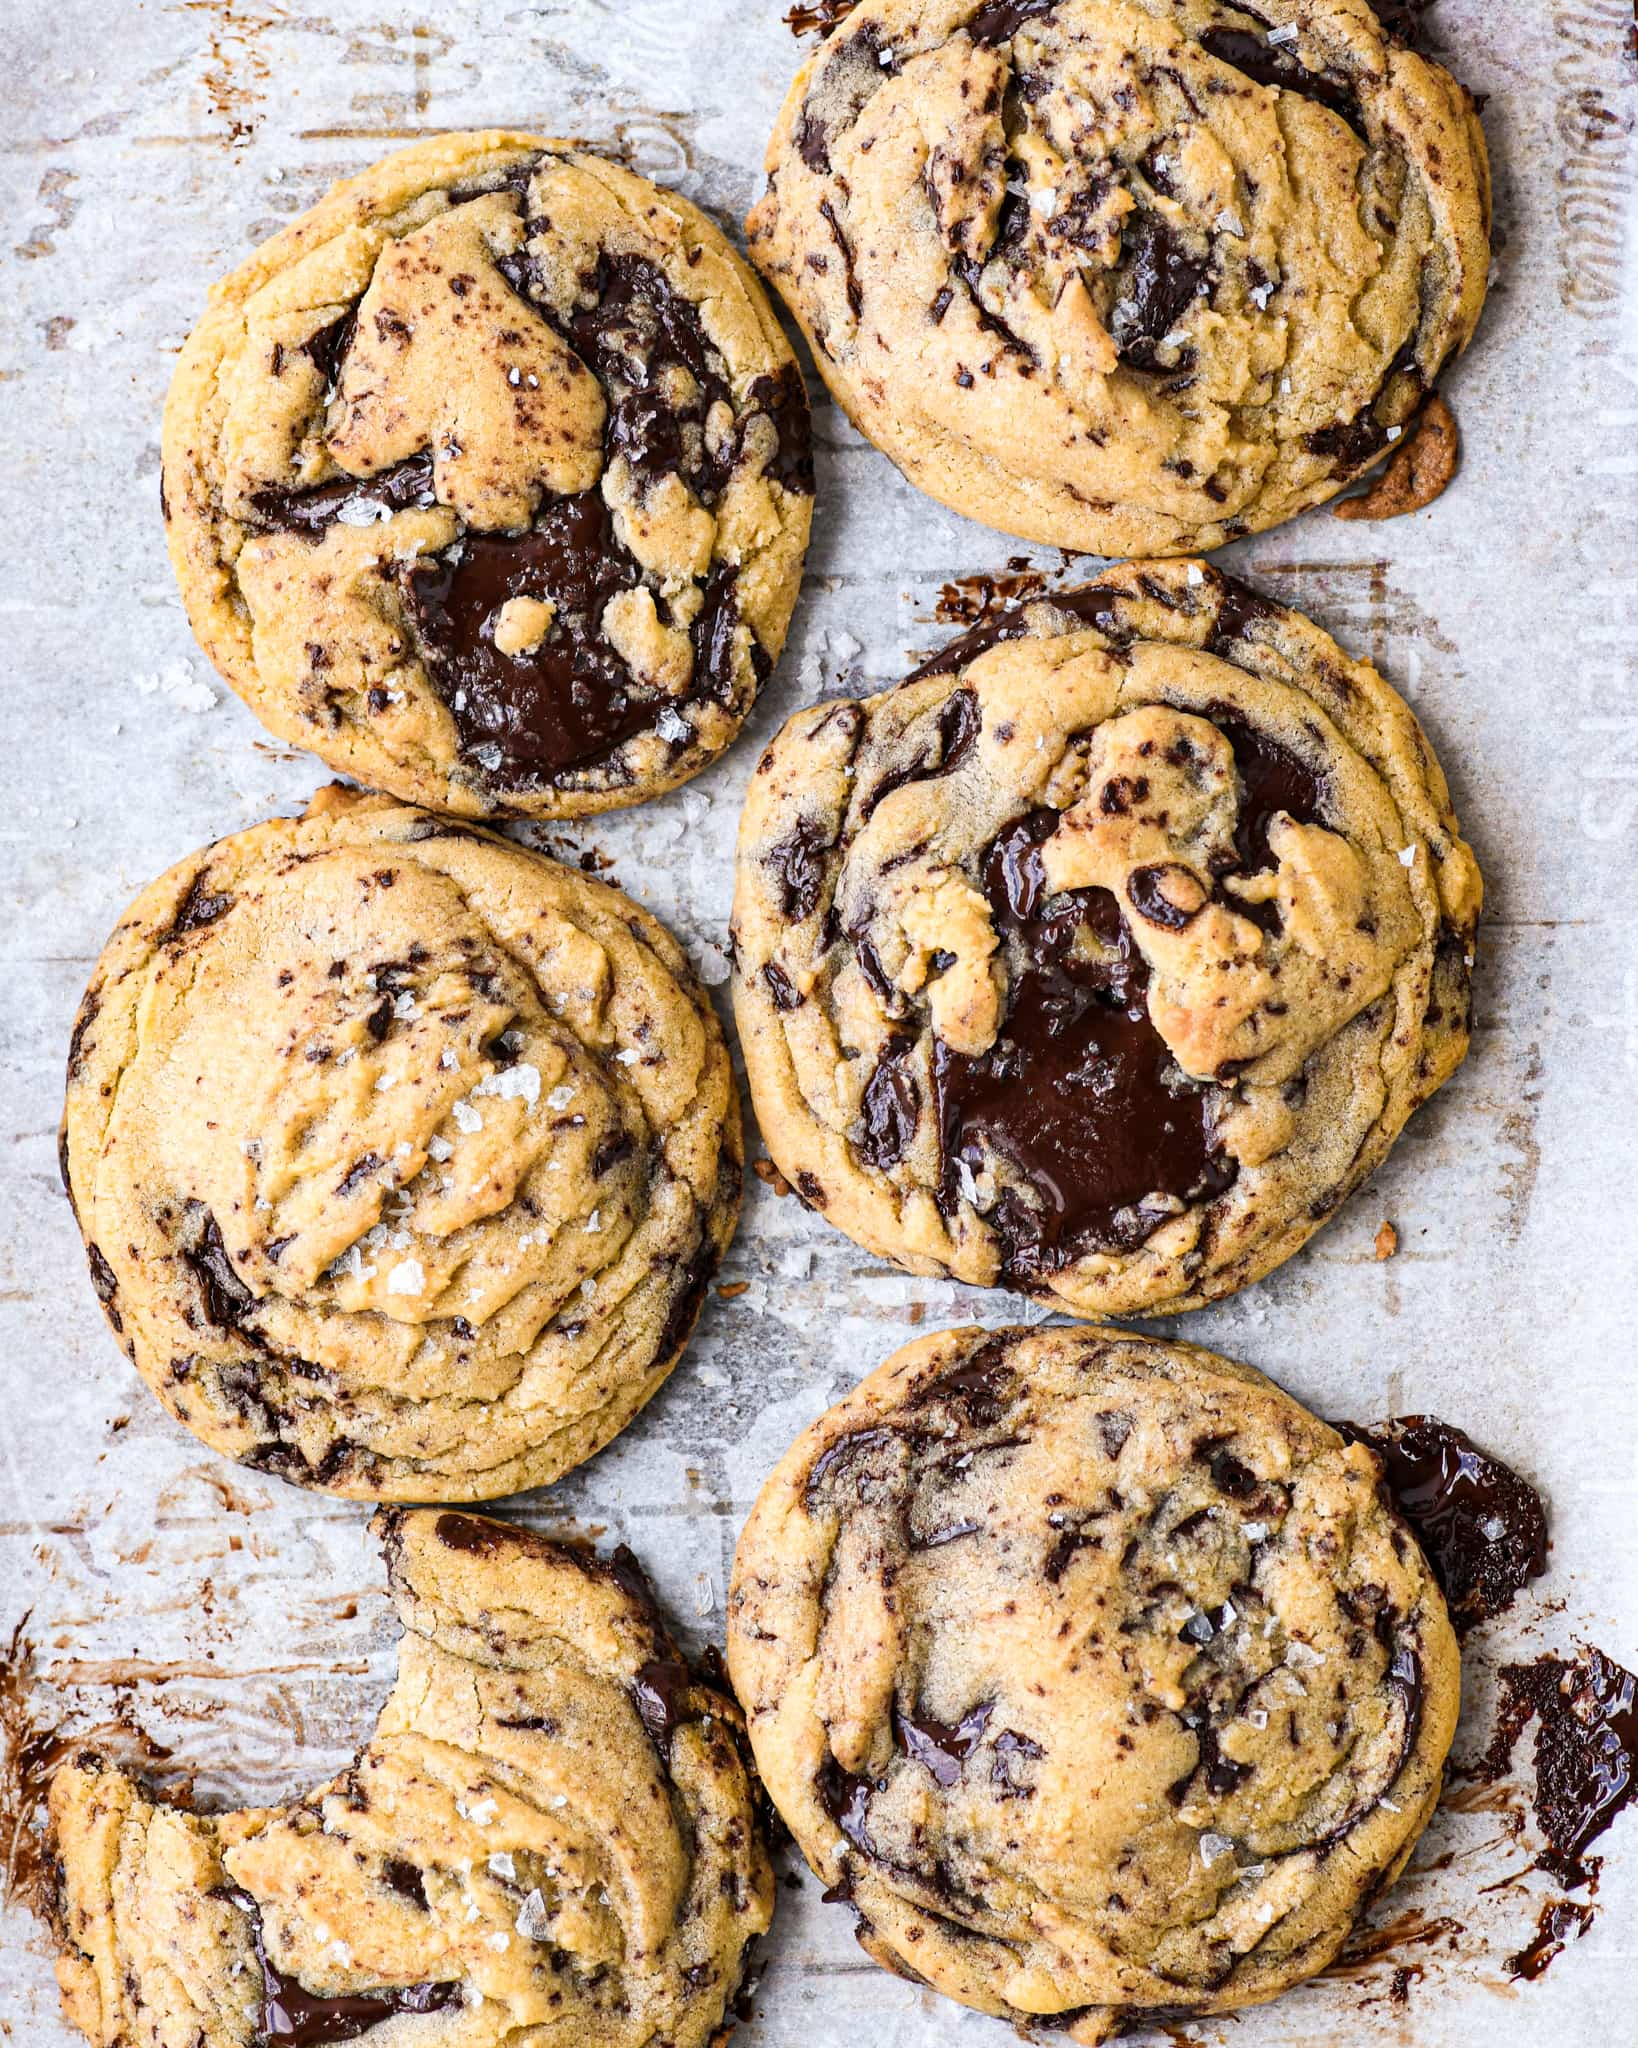 One Yolk Chocolate Chip Cookies Buttermilk By Sam